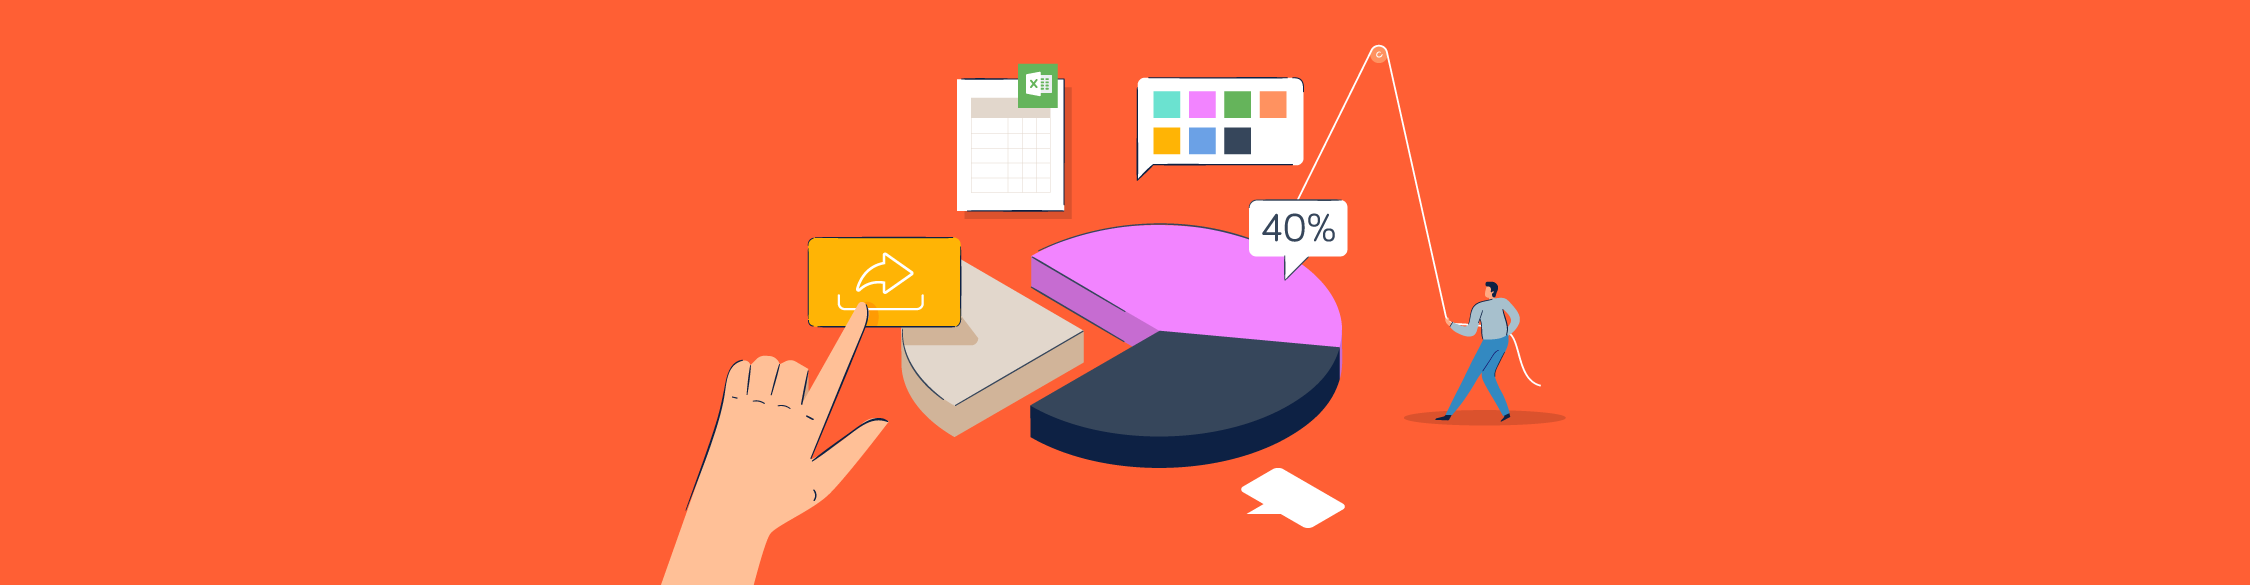 How to Make a Pie Chart: Step-by-Step Guide (& Templates)